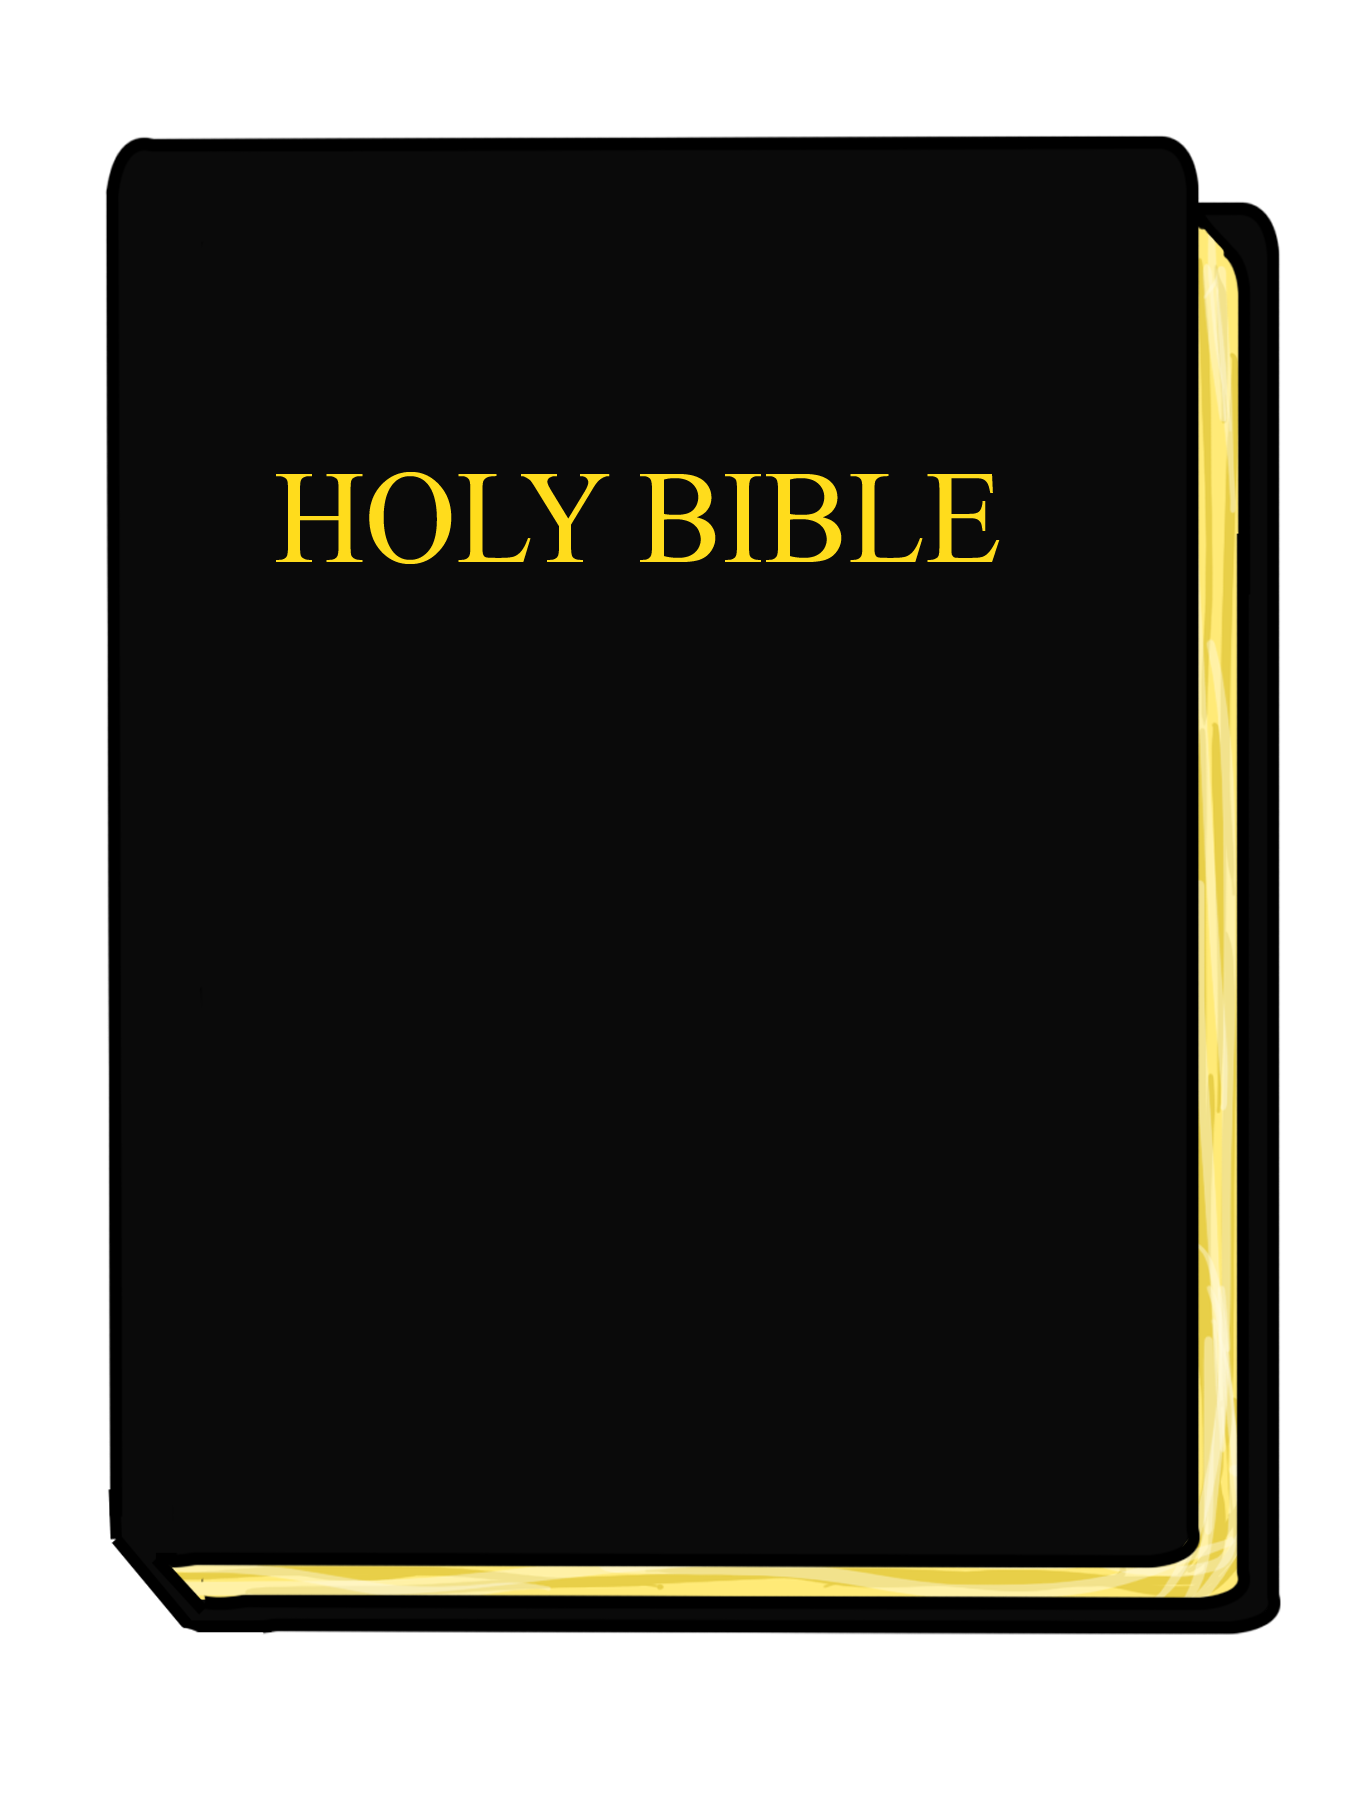 free to use public domain bible clip art bible pinterest rh pinterest com holy bible and cross clipart holy bible clipart images